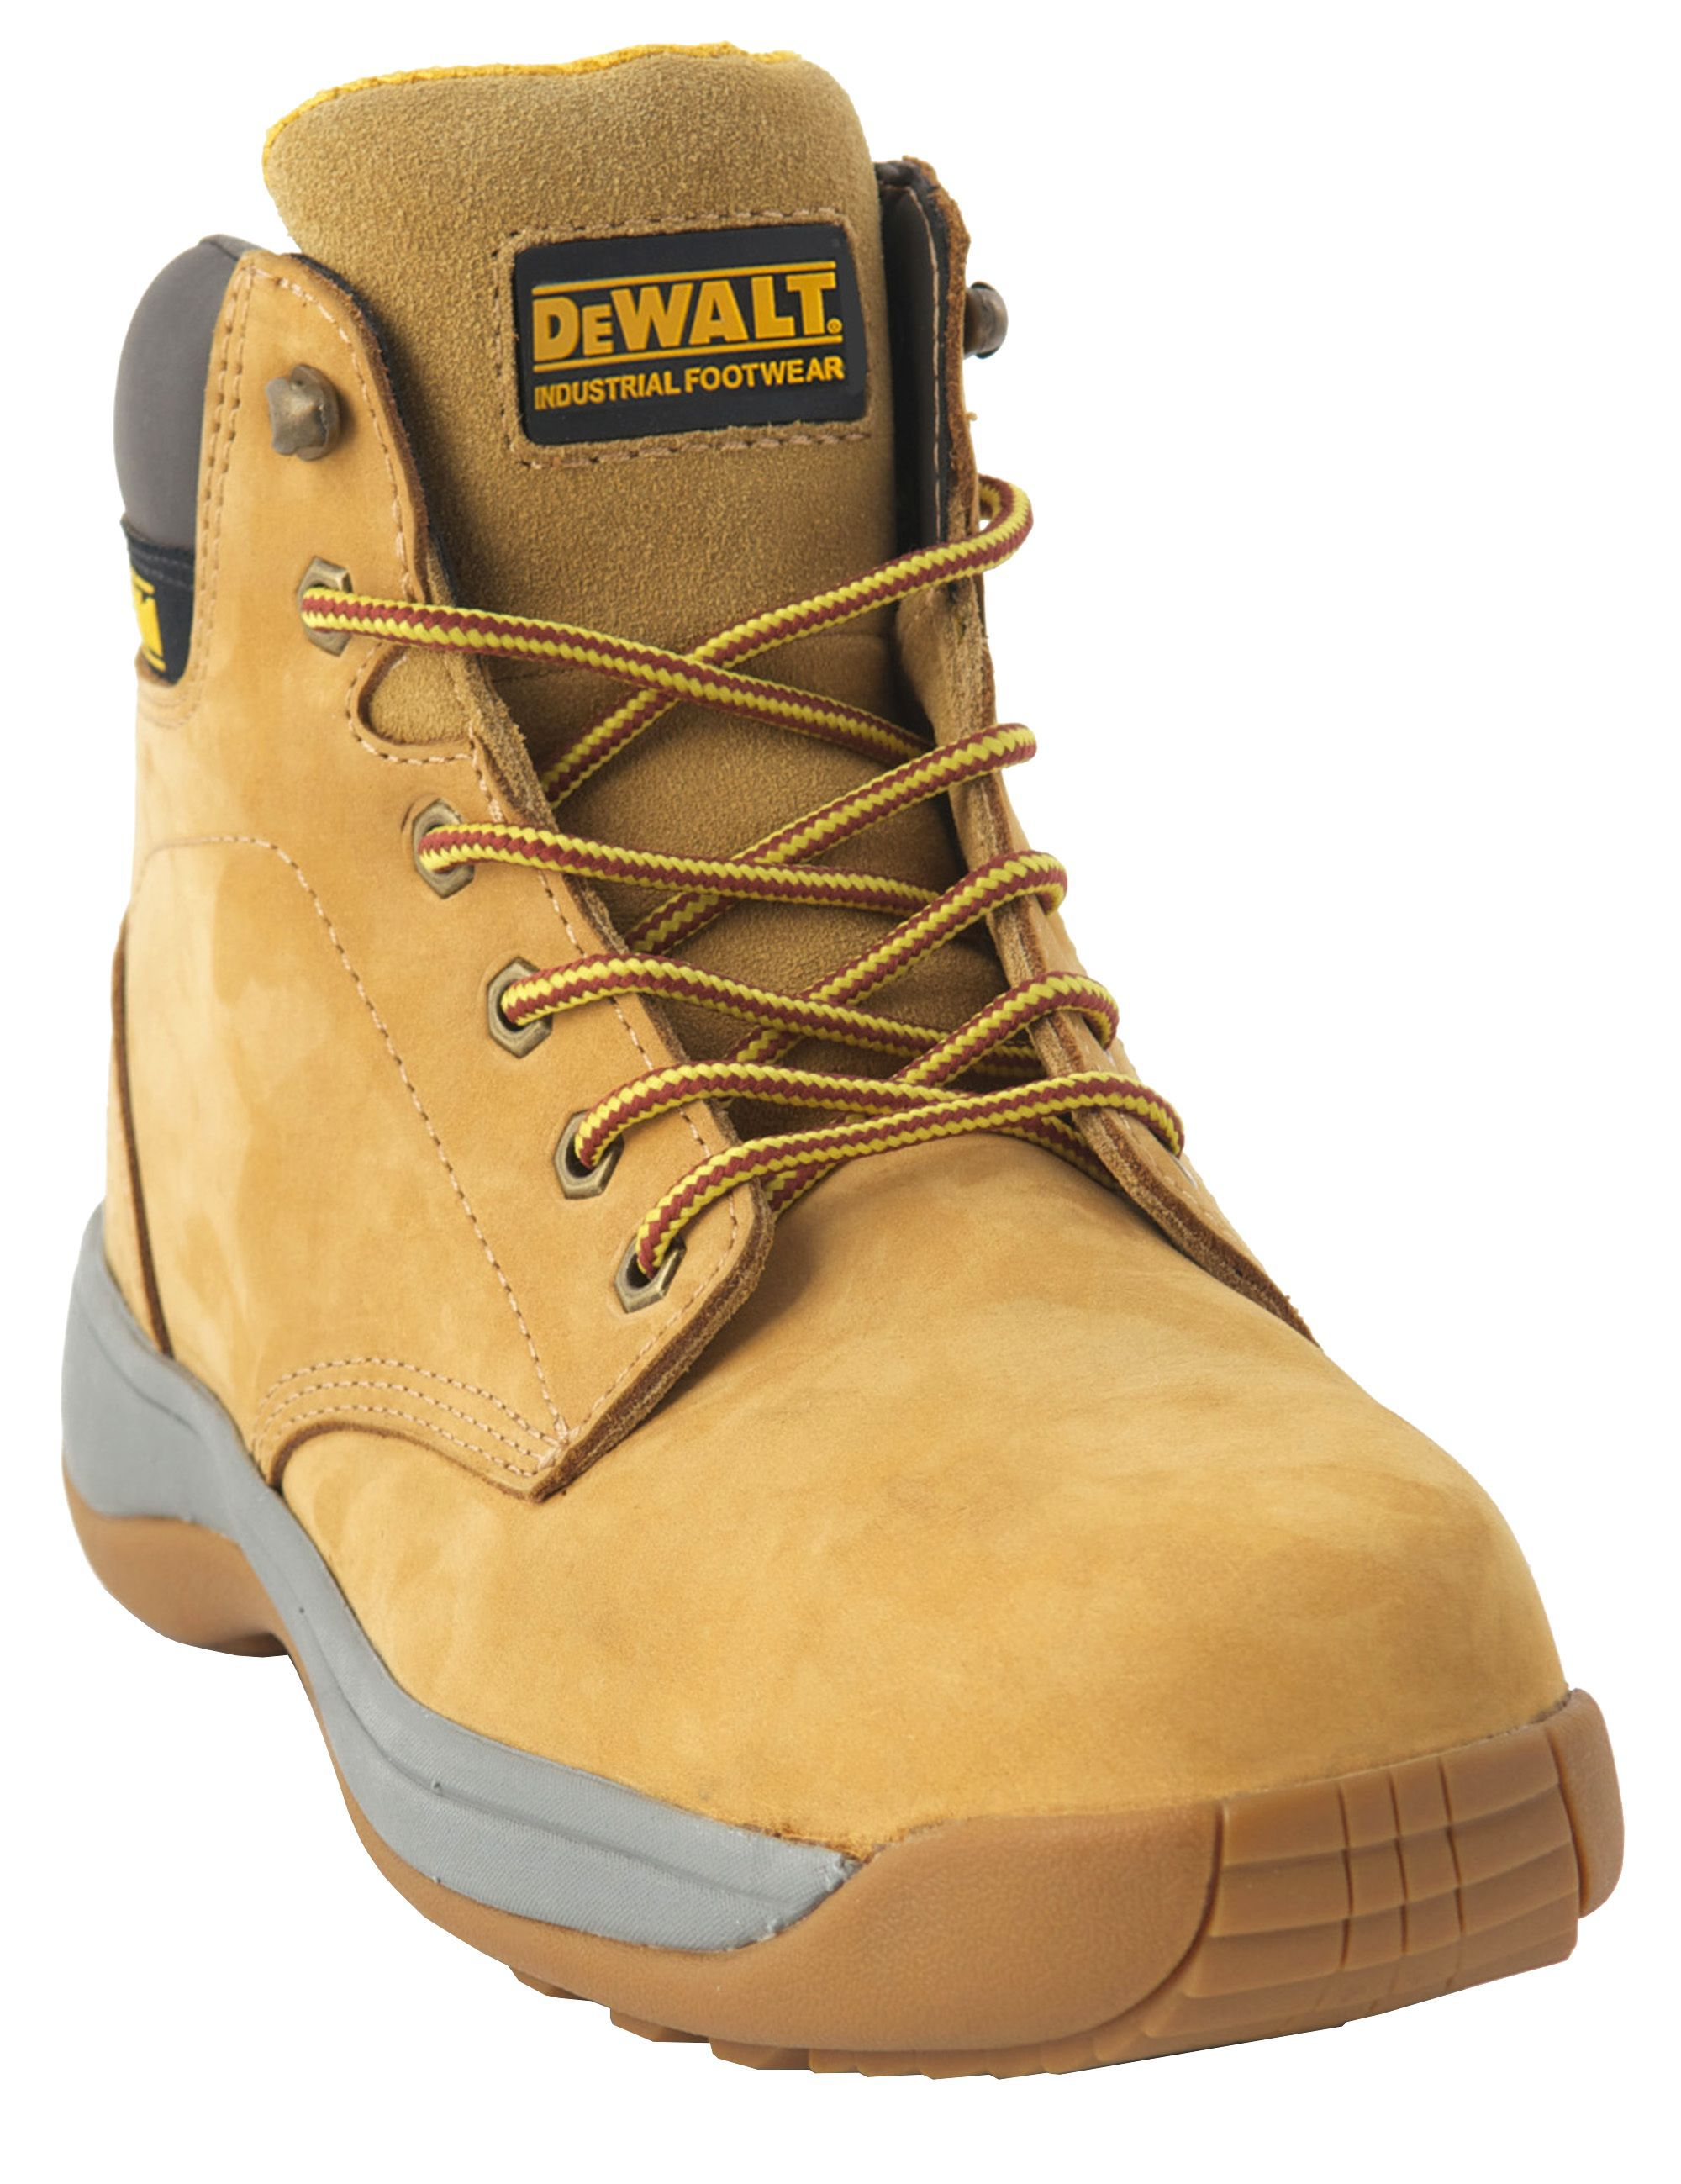 Dewalt Honey Safety Boot Size 7 Departments Diy At B Amp Q